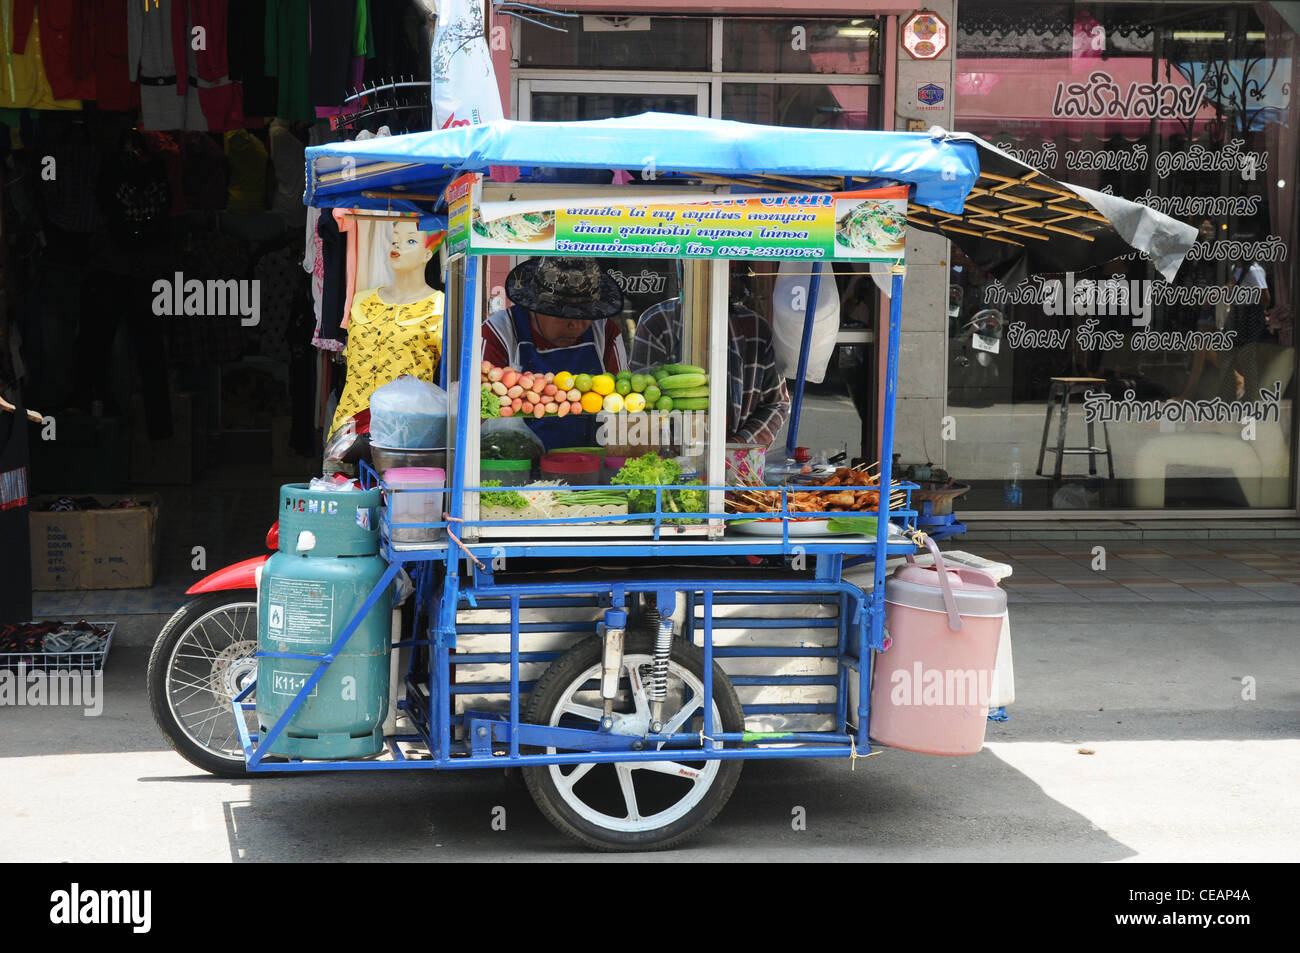 Mobile Food Outlet Stock Photos & Mobile Food Outlet Stock Images ...